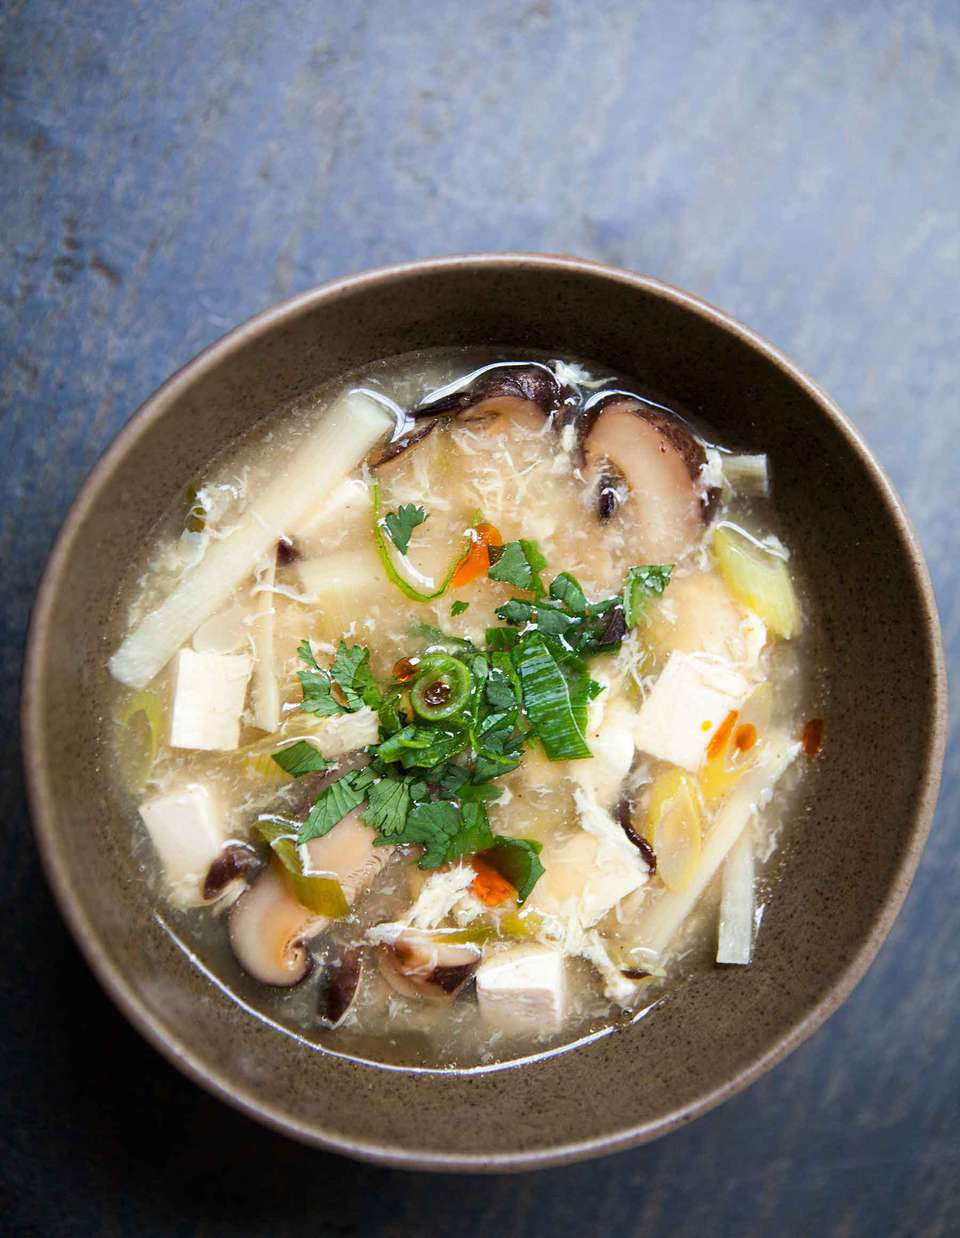 Easy Chinese Copycat Hot and Sour Soup with tofu and mushrooms served in a bowl